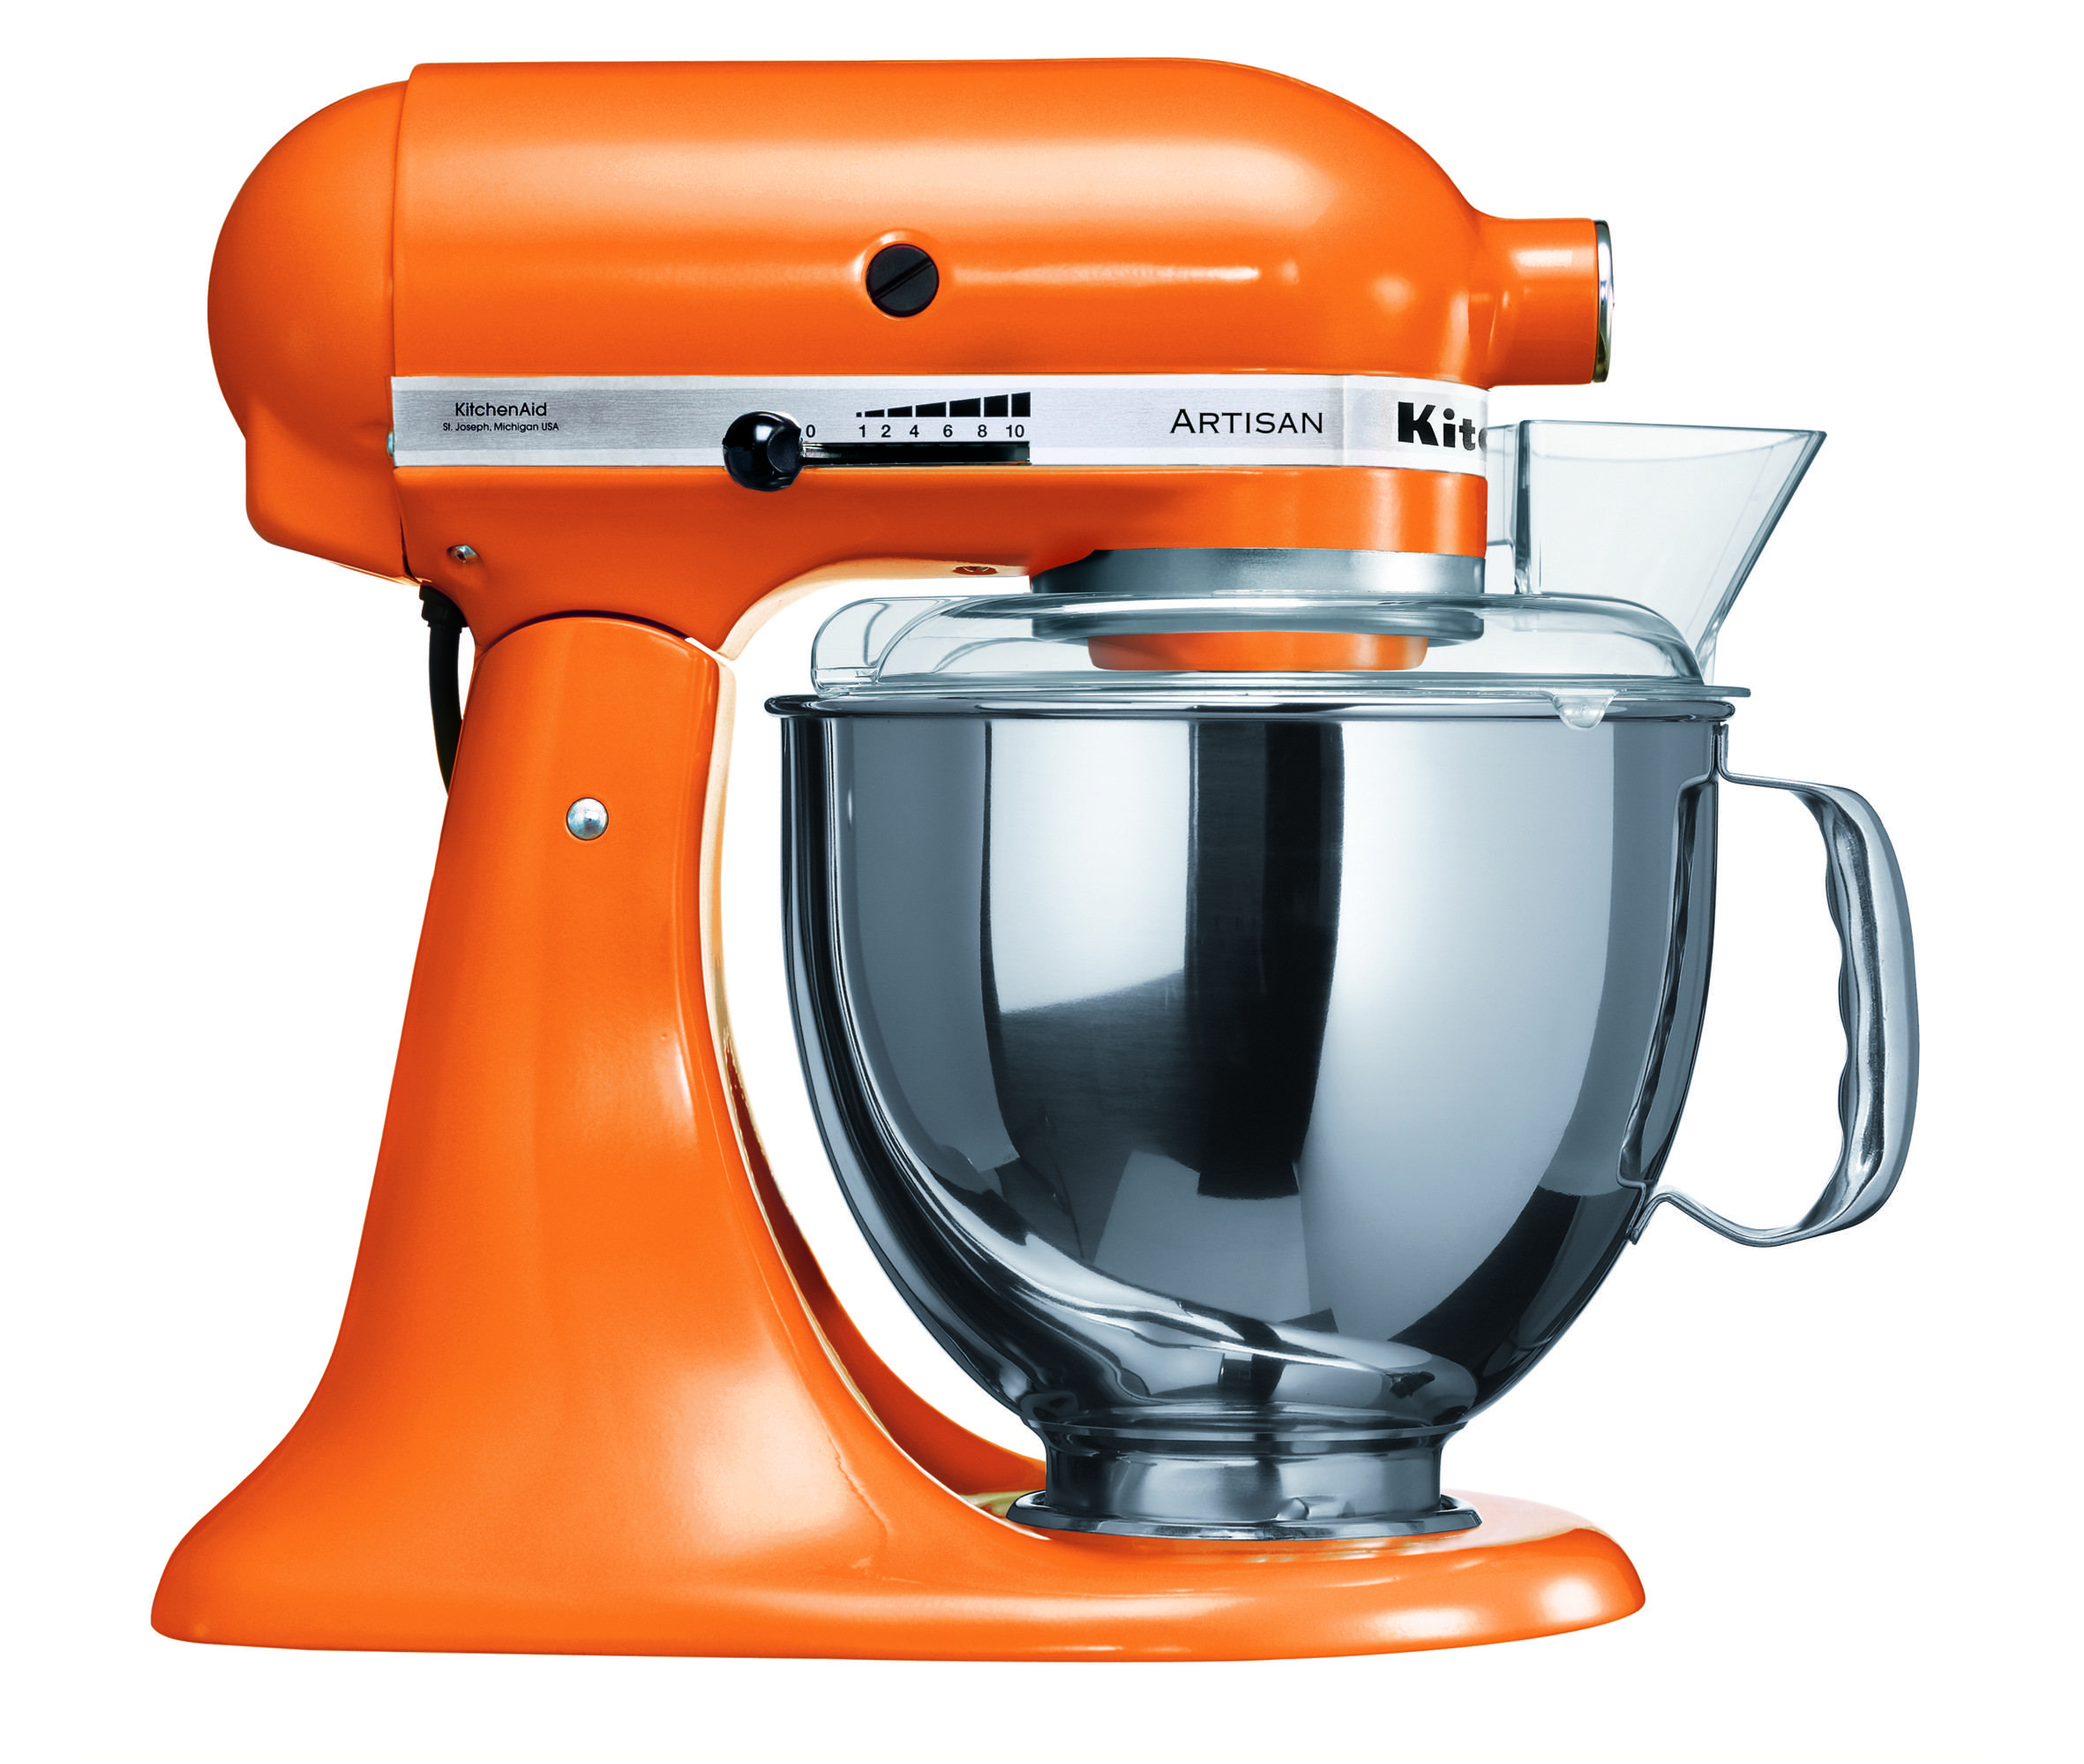 Remarkable Kitchen Aid Artisan 2362 x 1999 · 2550 kB · jpeg